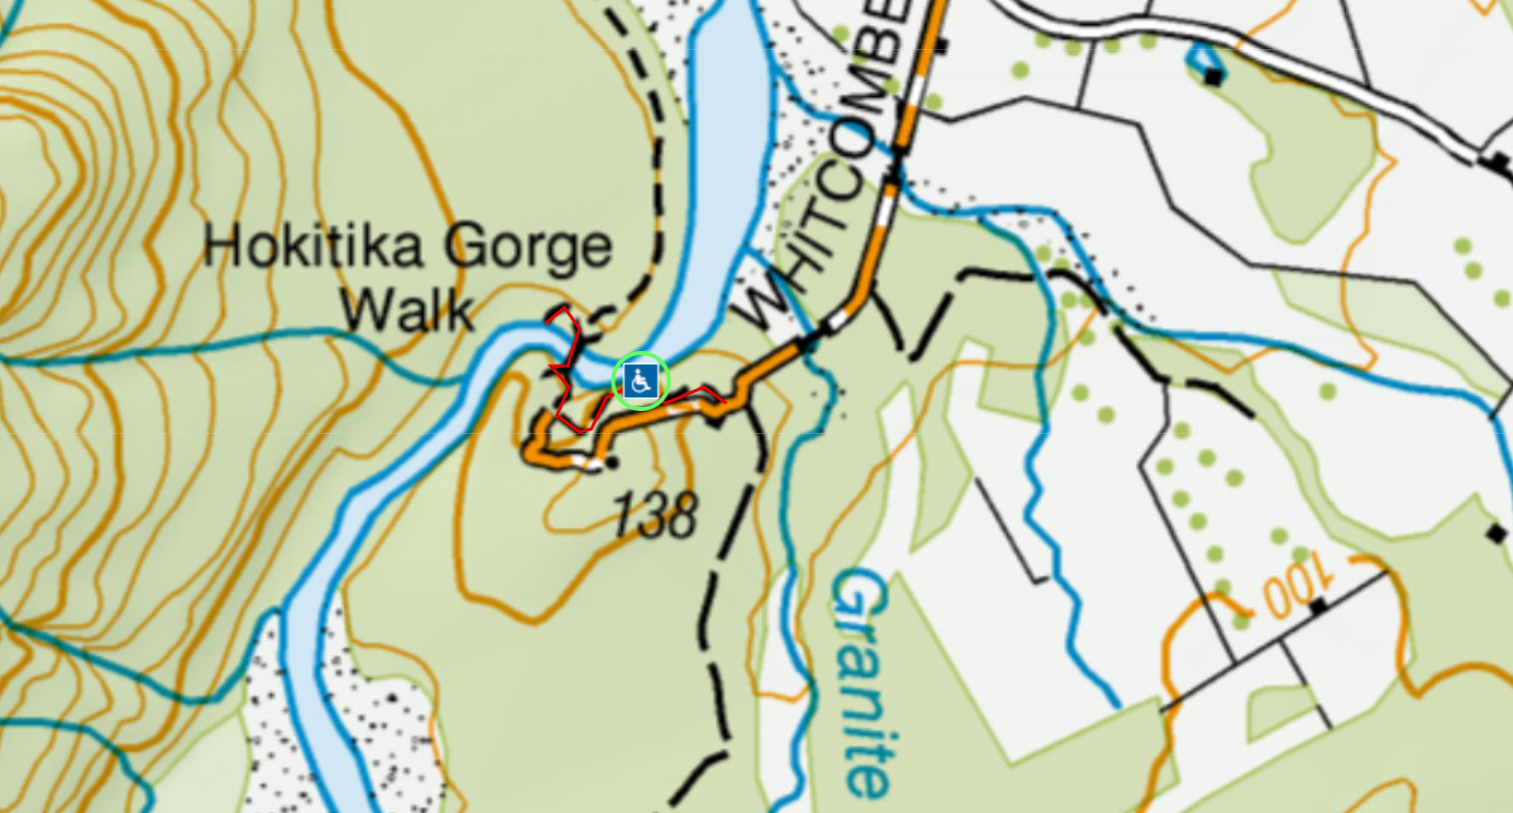 Hokitika-Gorge-Walk-Map.2